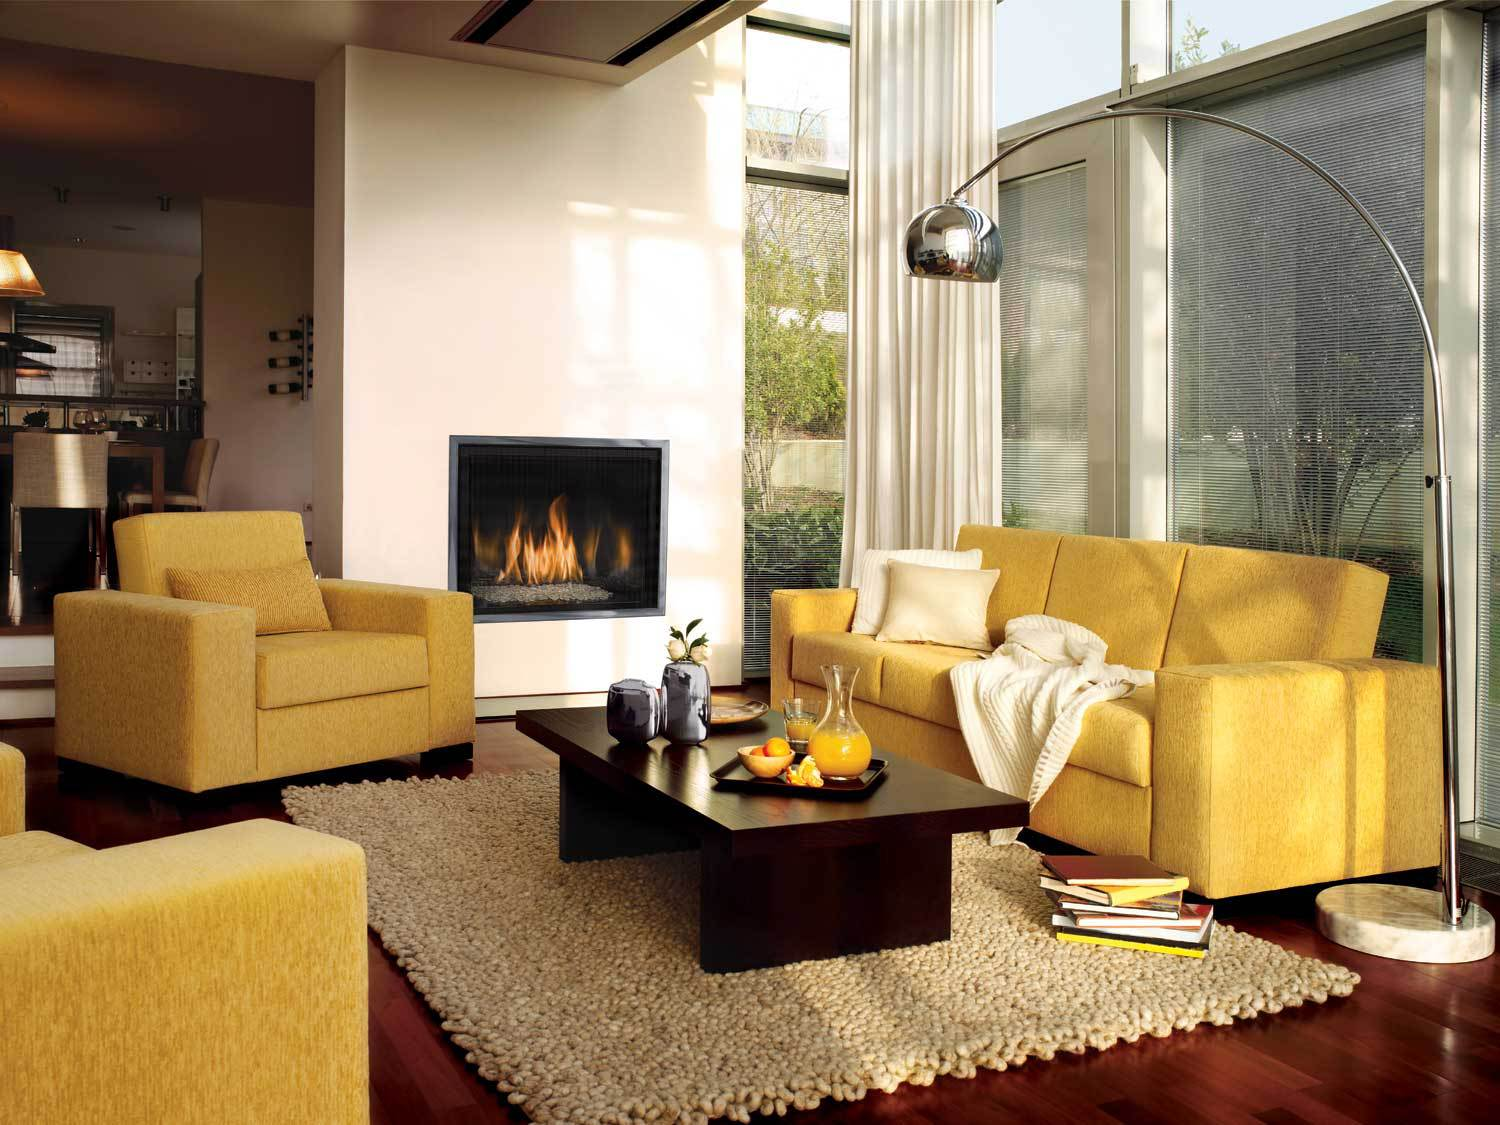 Contemporary Gas Fireplace - Mendota FV41